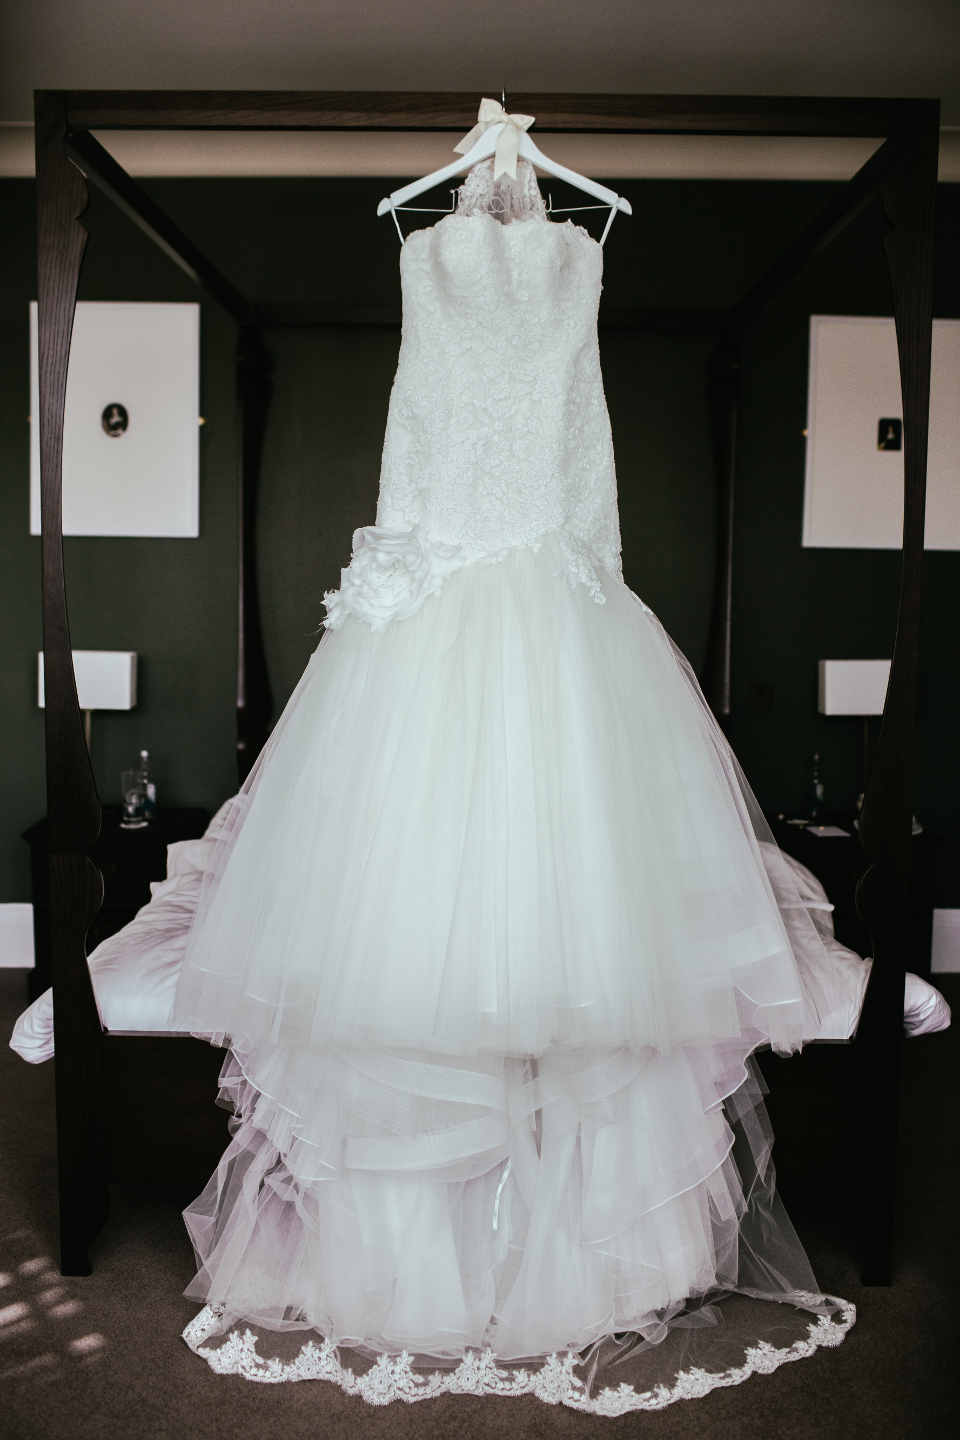 In theory, there is no upper limit to the price of a wedding dress